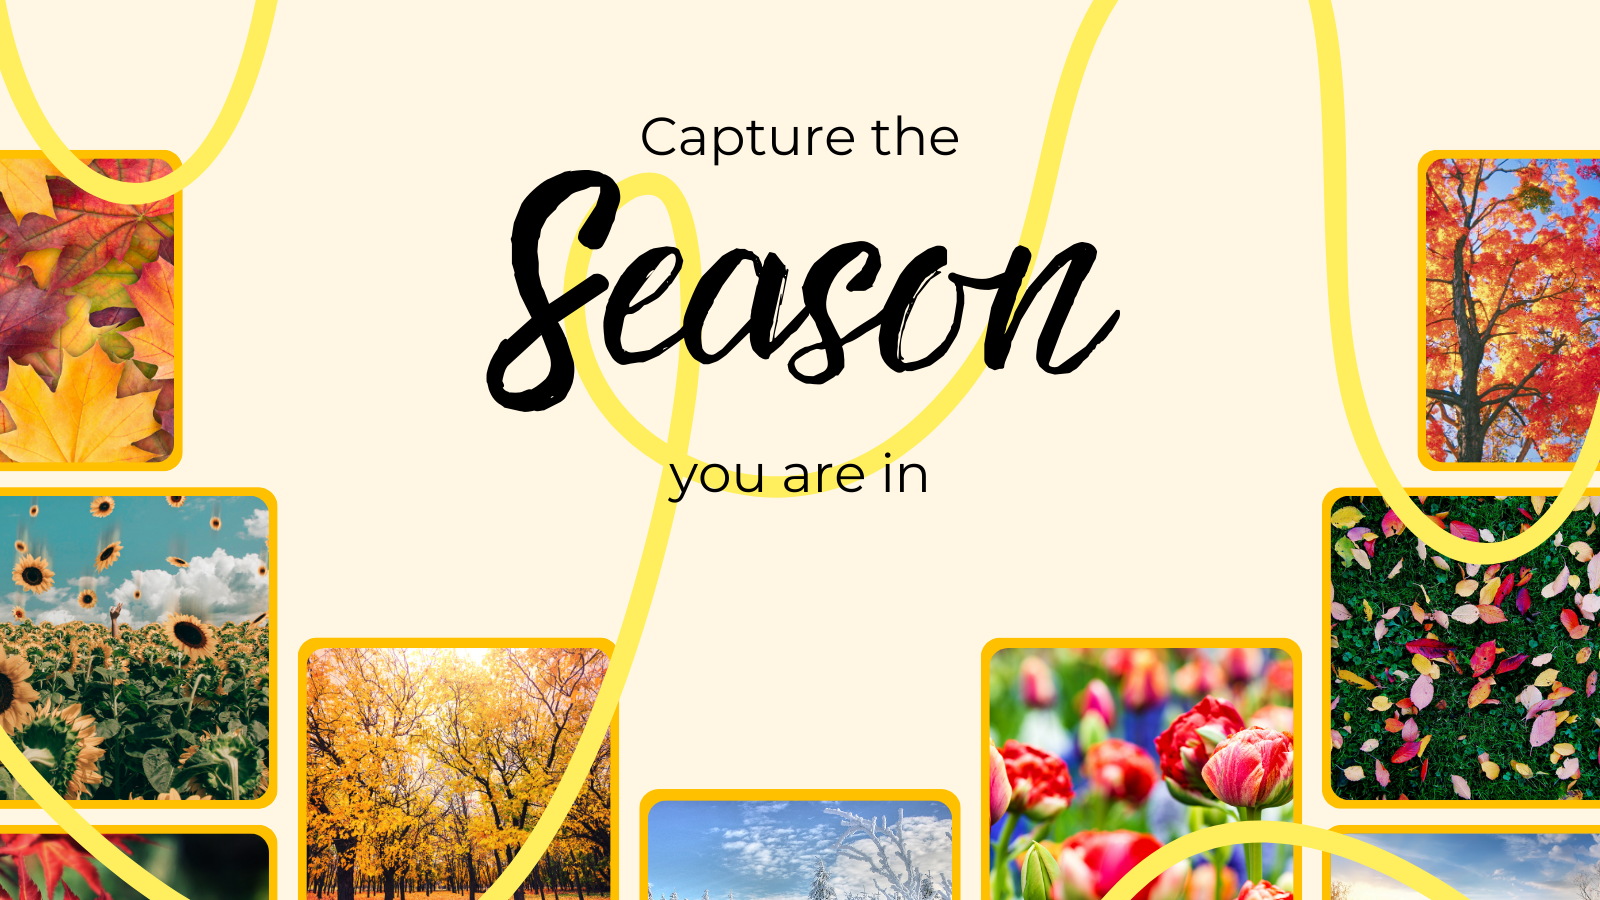 Capture the season you are in - Photography Challenge